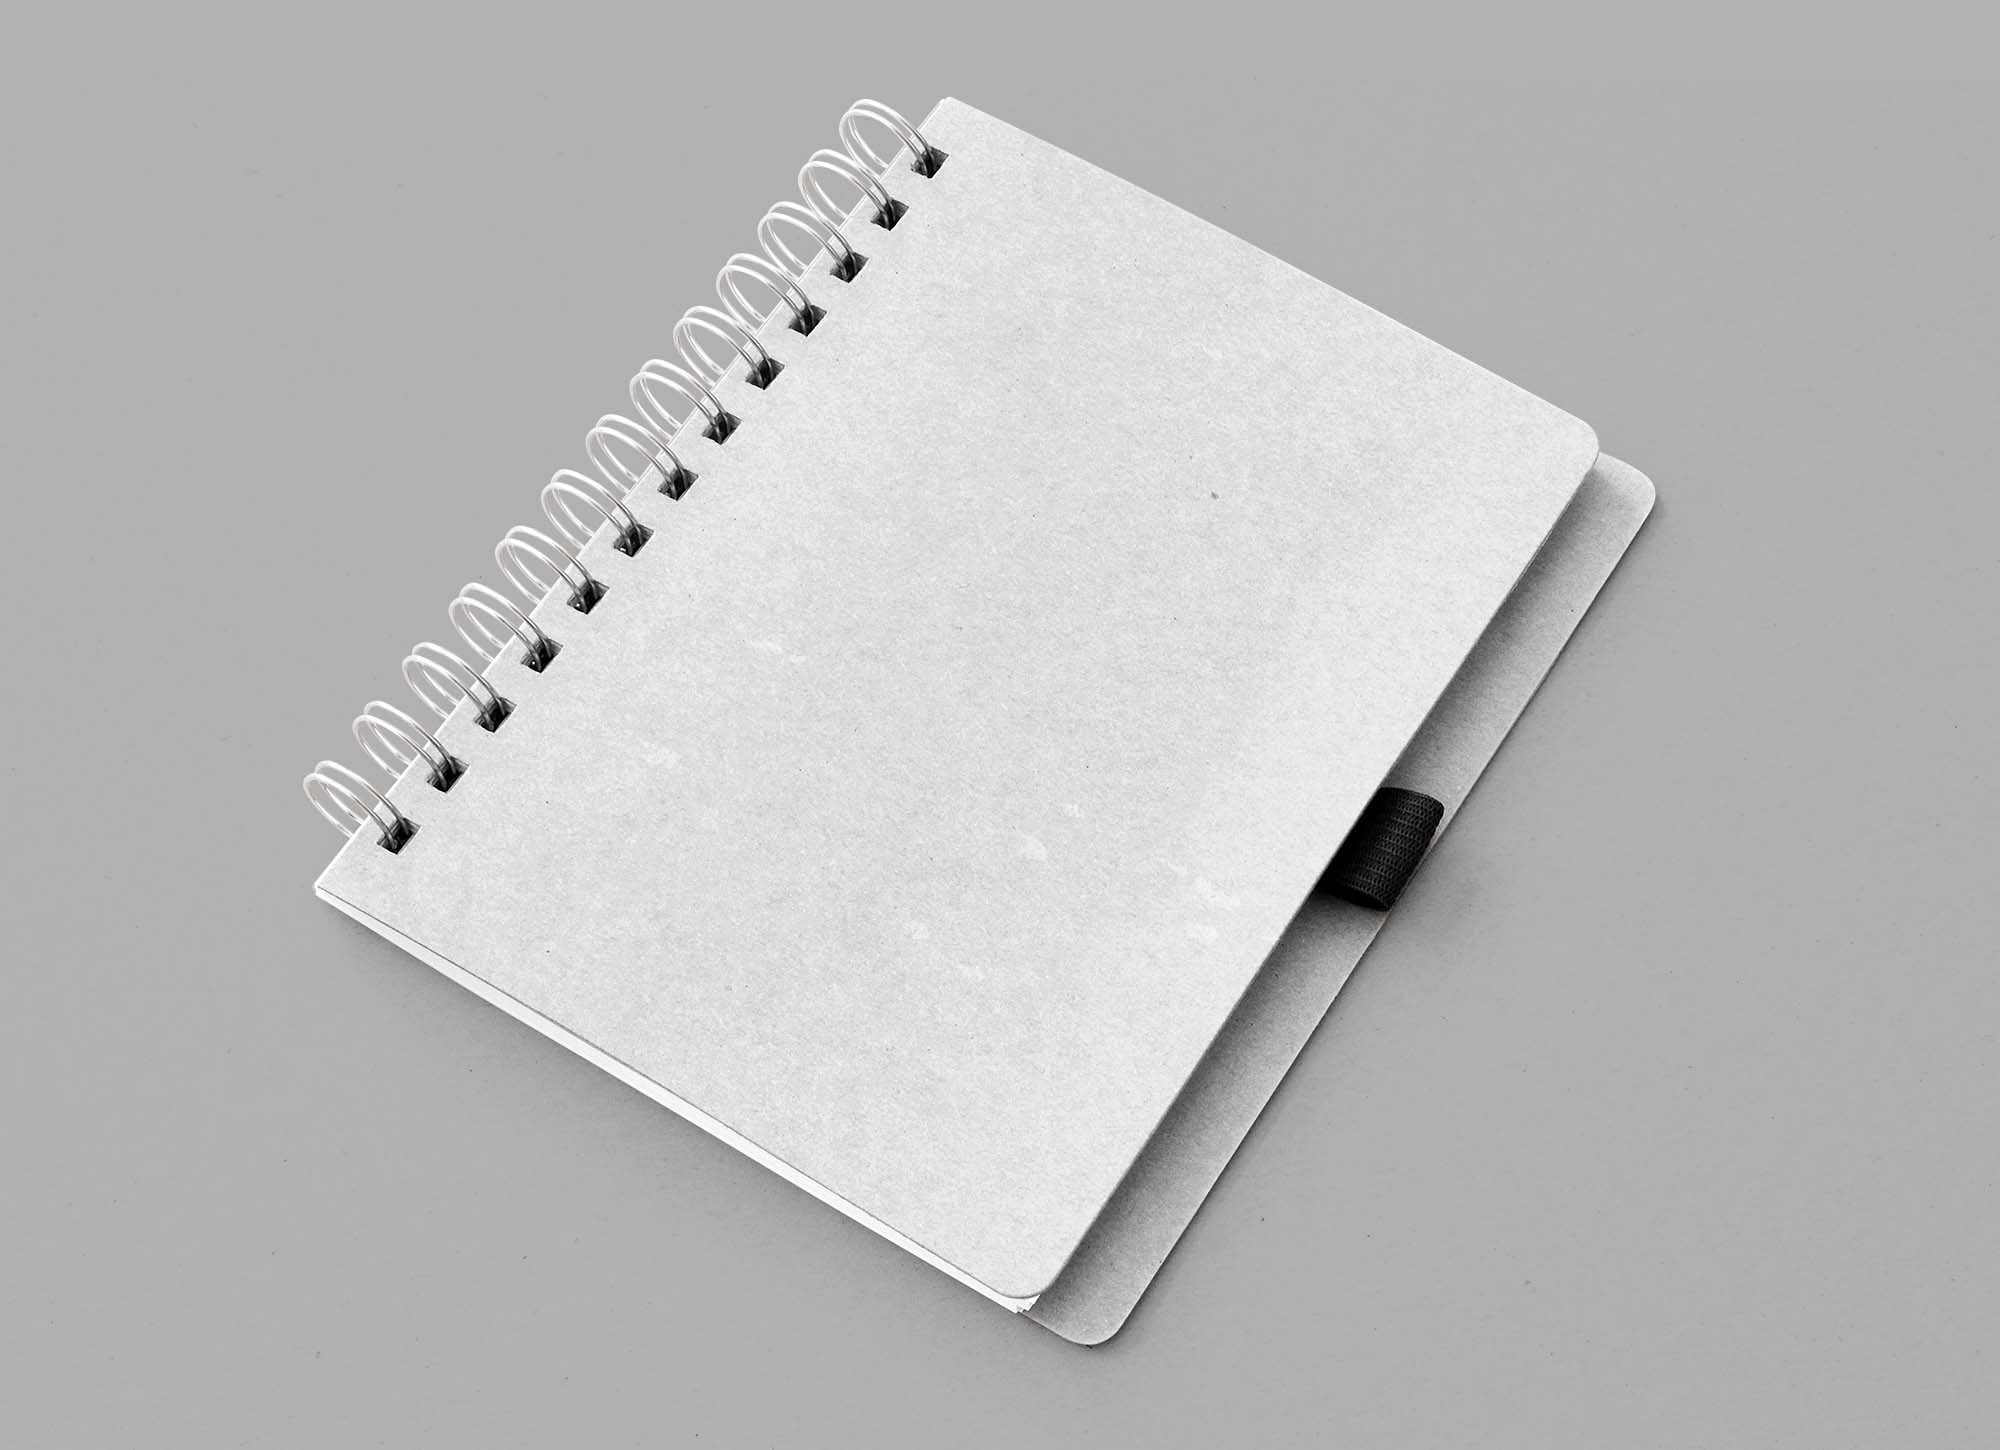 Clean Notebook Mockup 2